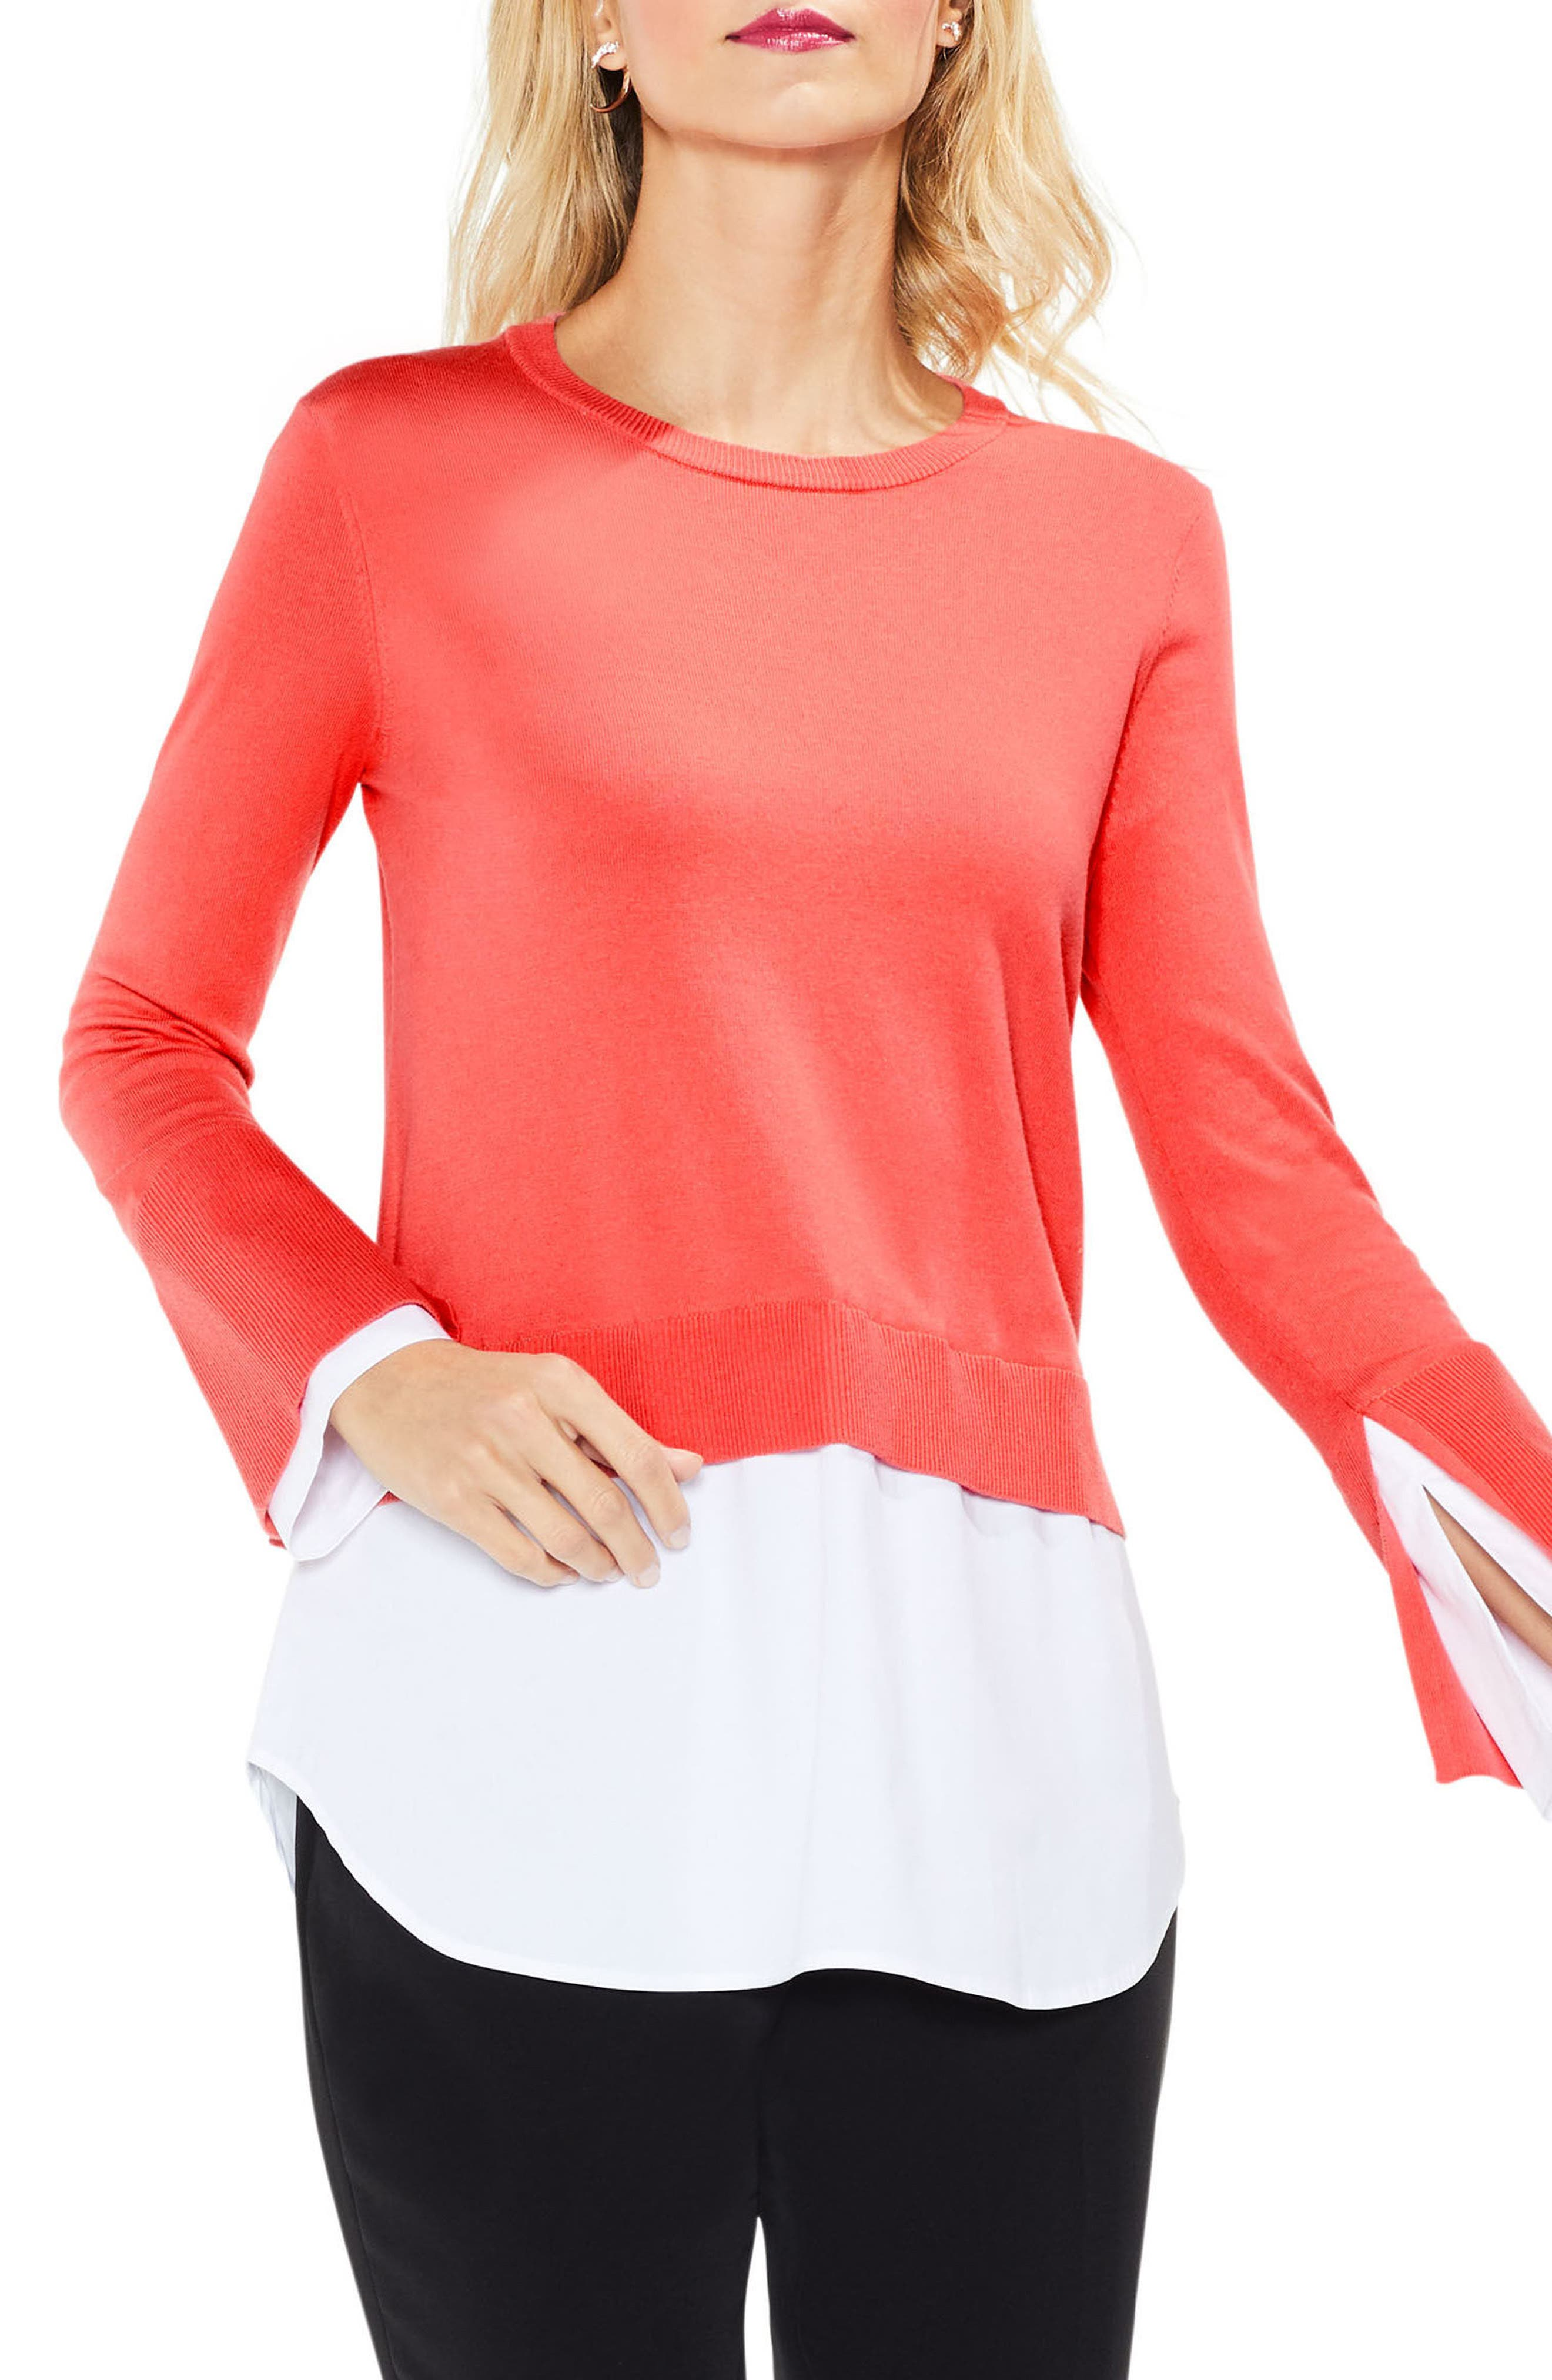 Main Image - Vince Camuto Layered Look Sweater